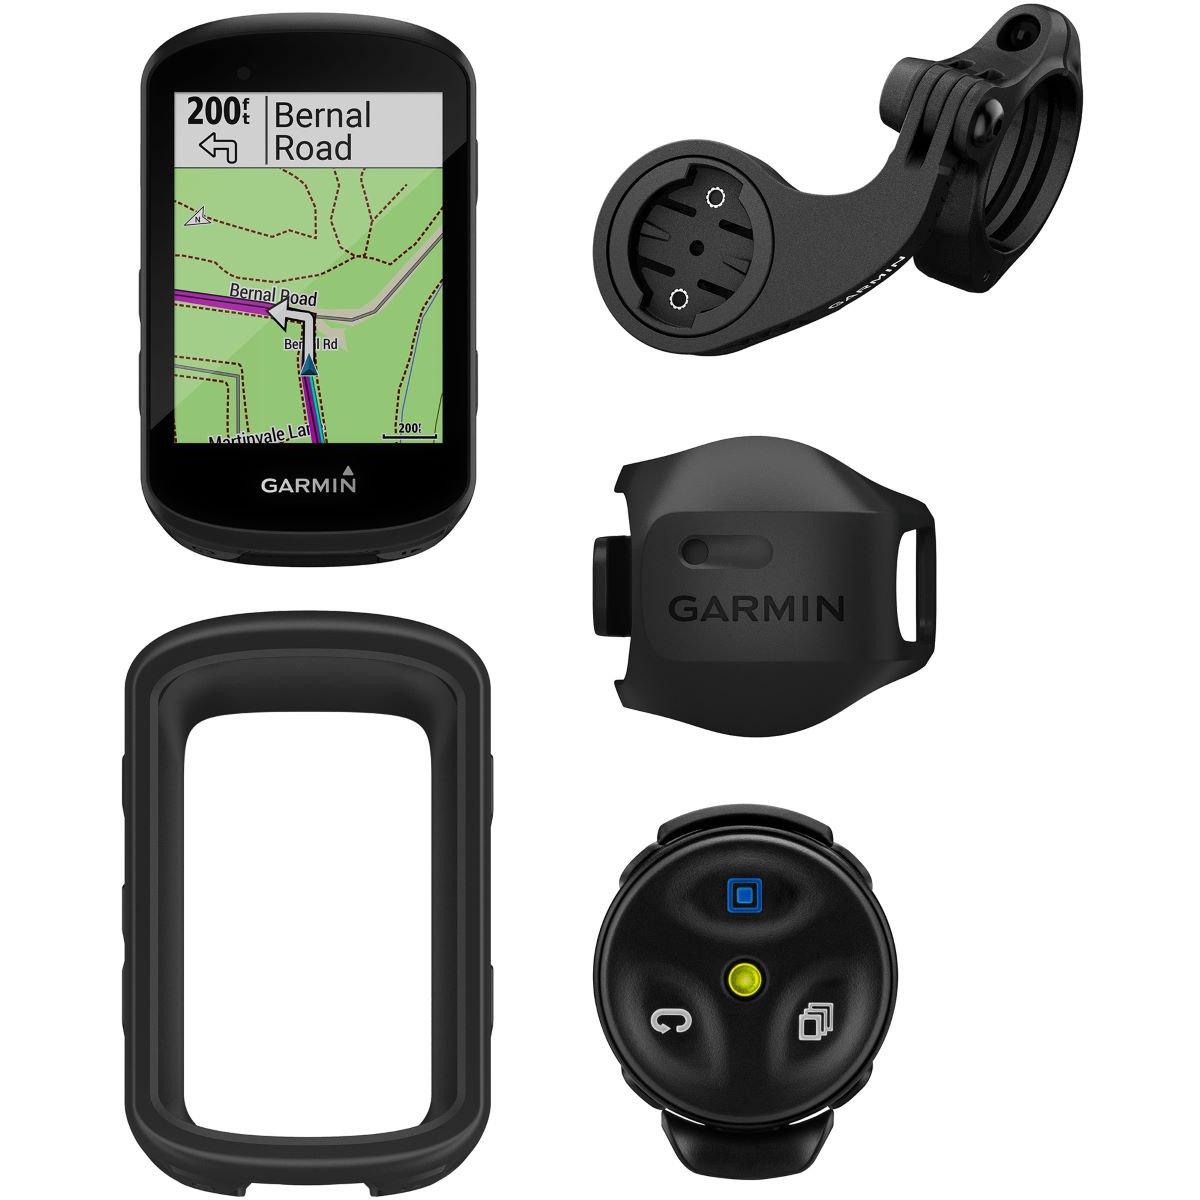 Garmin Garmin Edge 530 Mountain Bike Computer Bundle   Computers